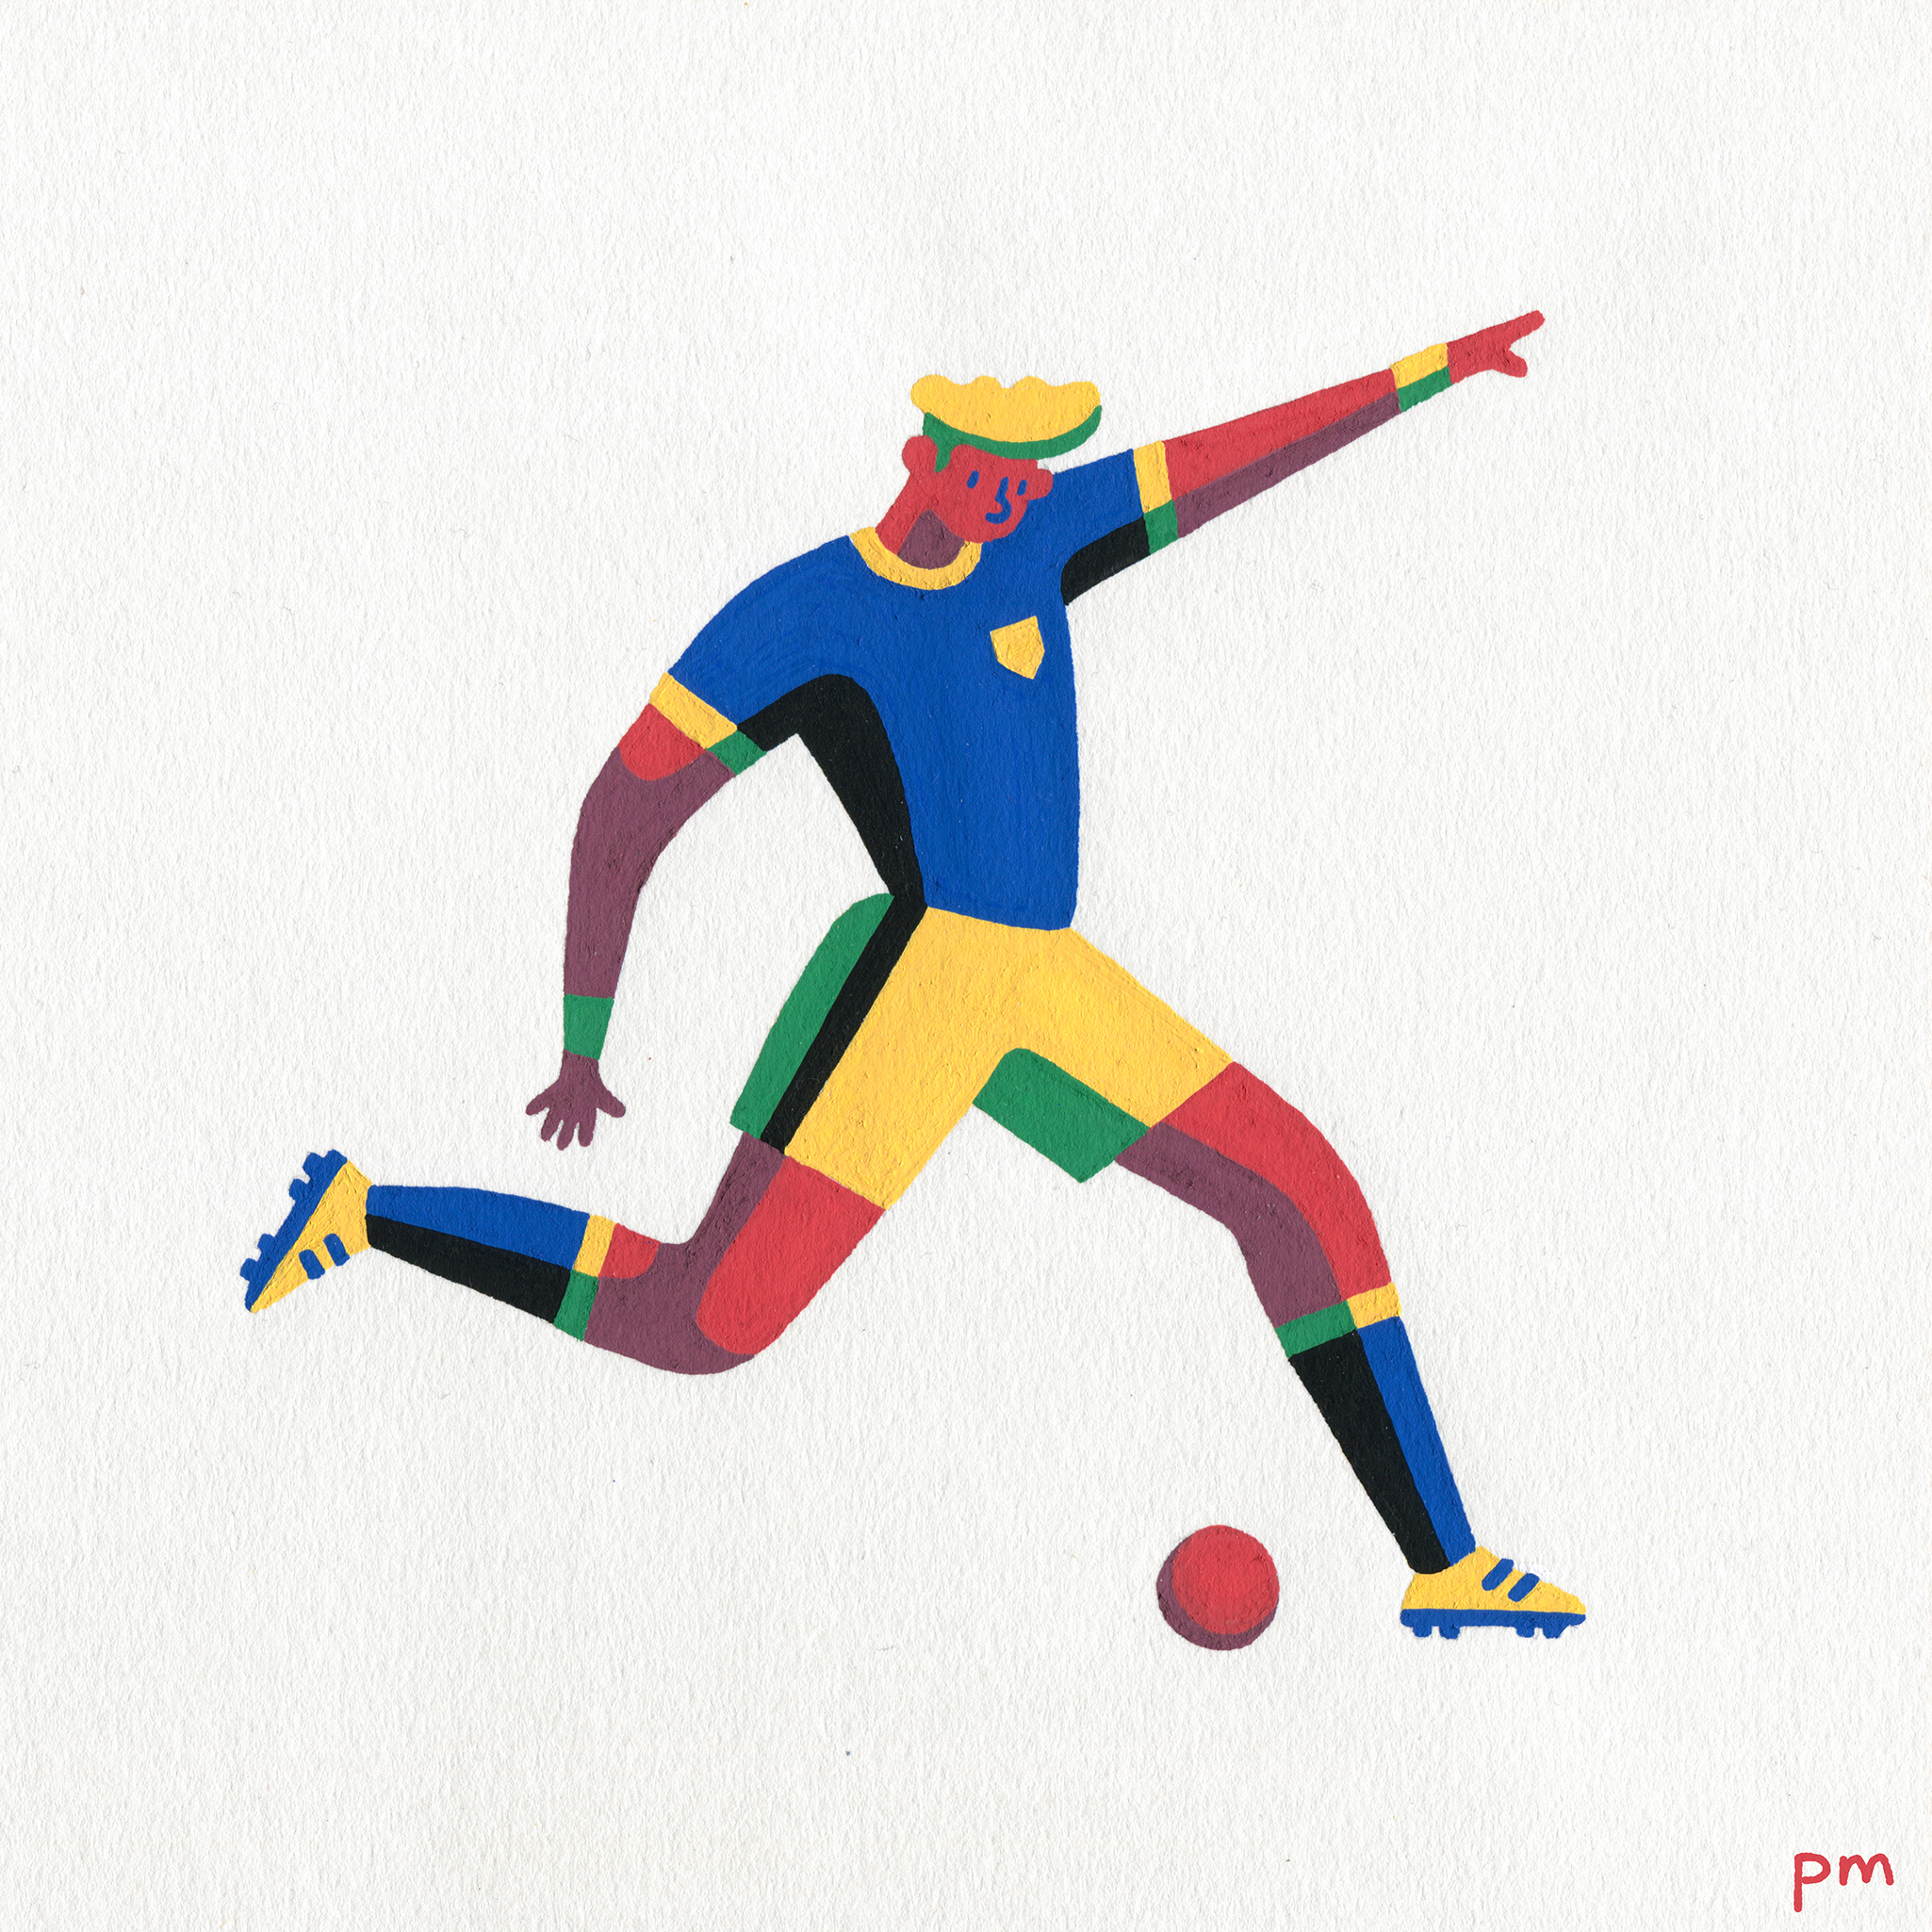 I illustrated this footballer for the football World Cup, painted using colourful posca markers.